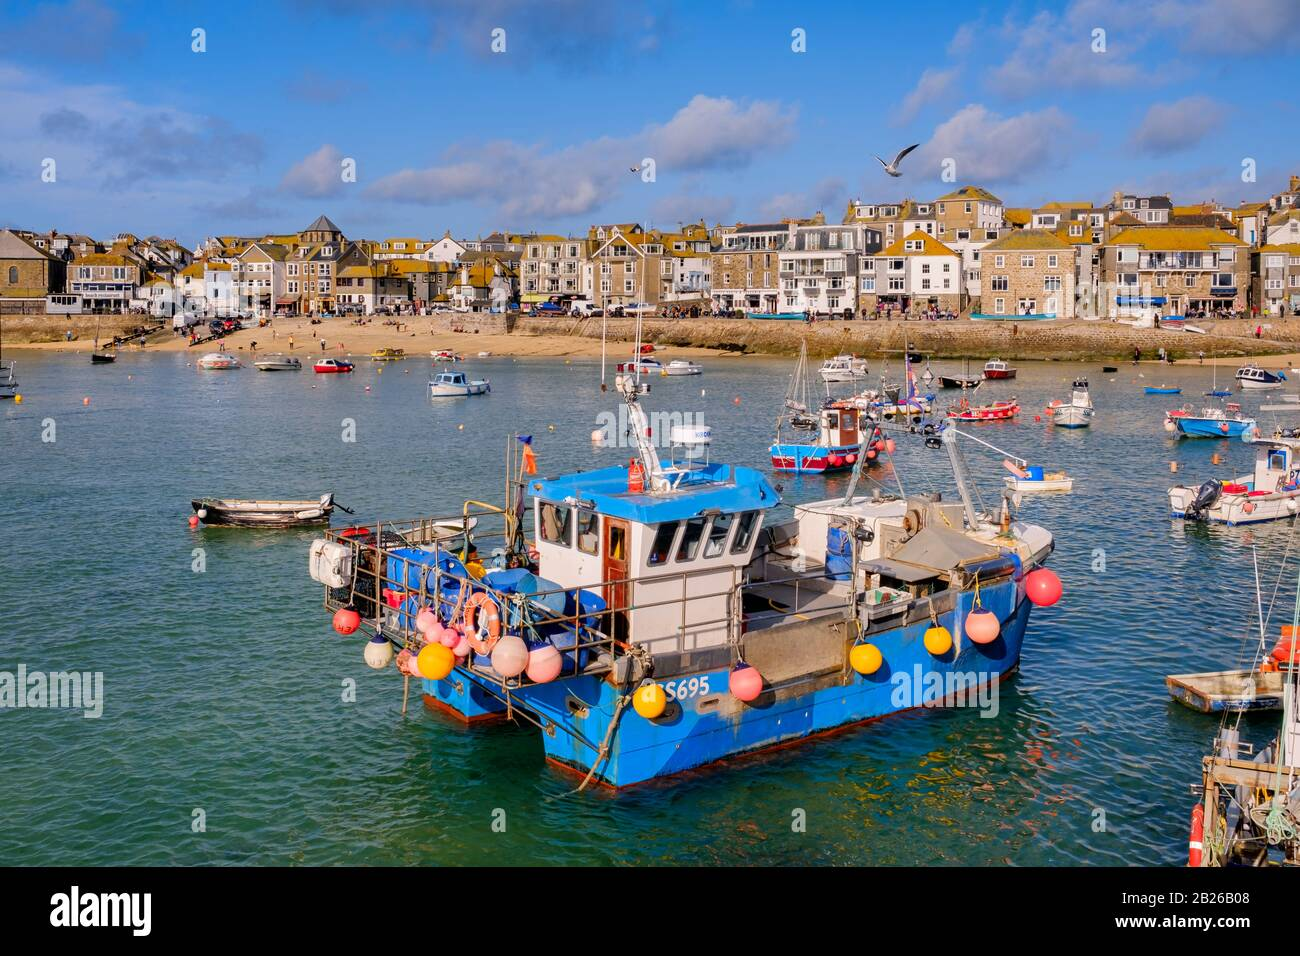 Views across St Ives Harbour to St Ives village and Smeatons Pier with boats in the Harbour, Cornwall, South West, UK Stock Photo